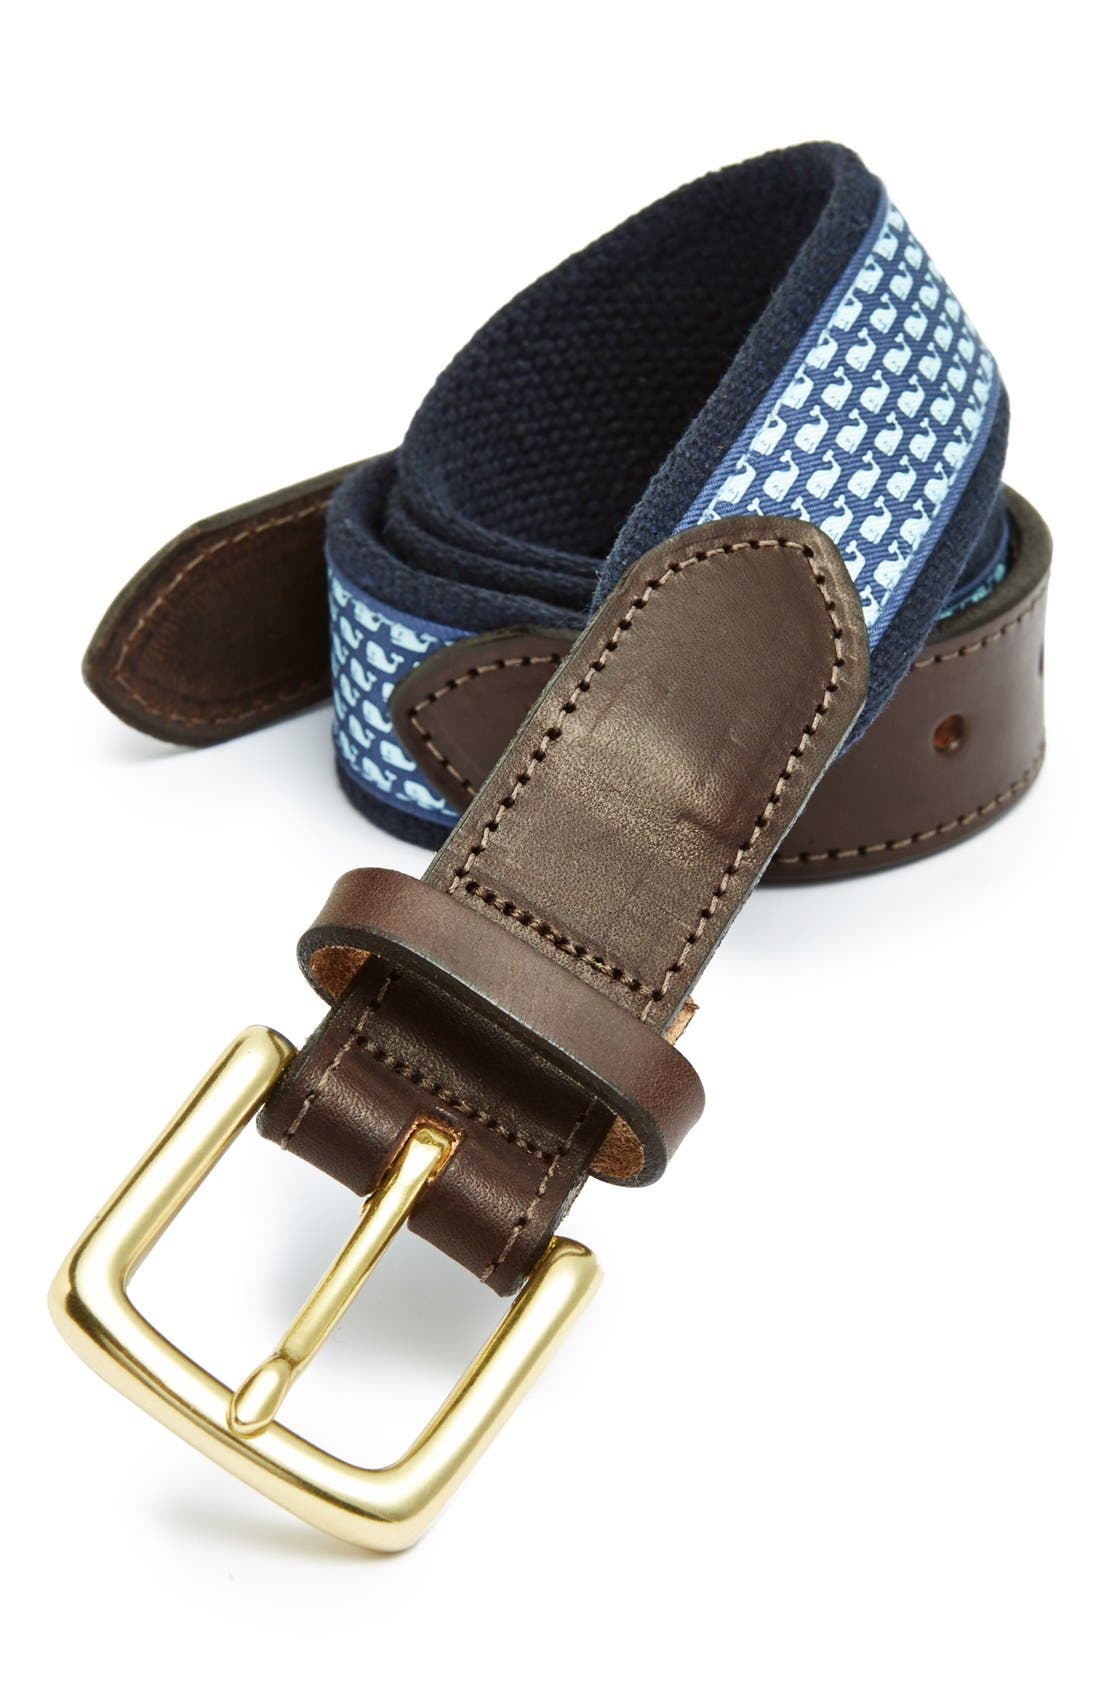 Whale Club Leather & Canvas Belt,                         Main,                         color, Navy